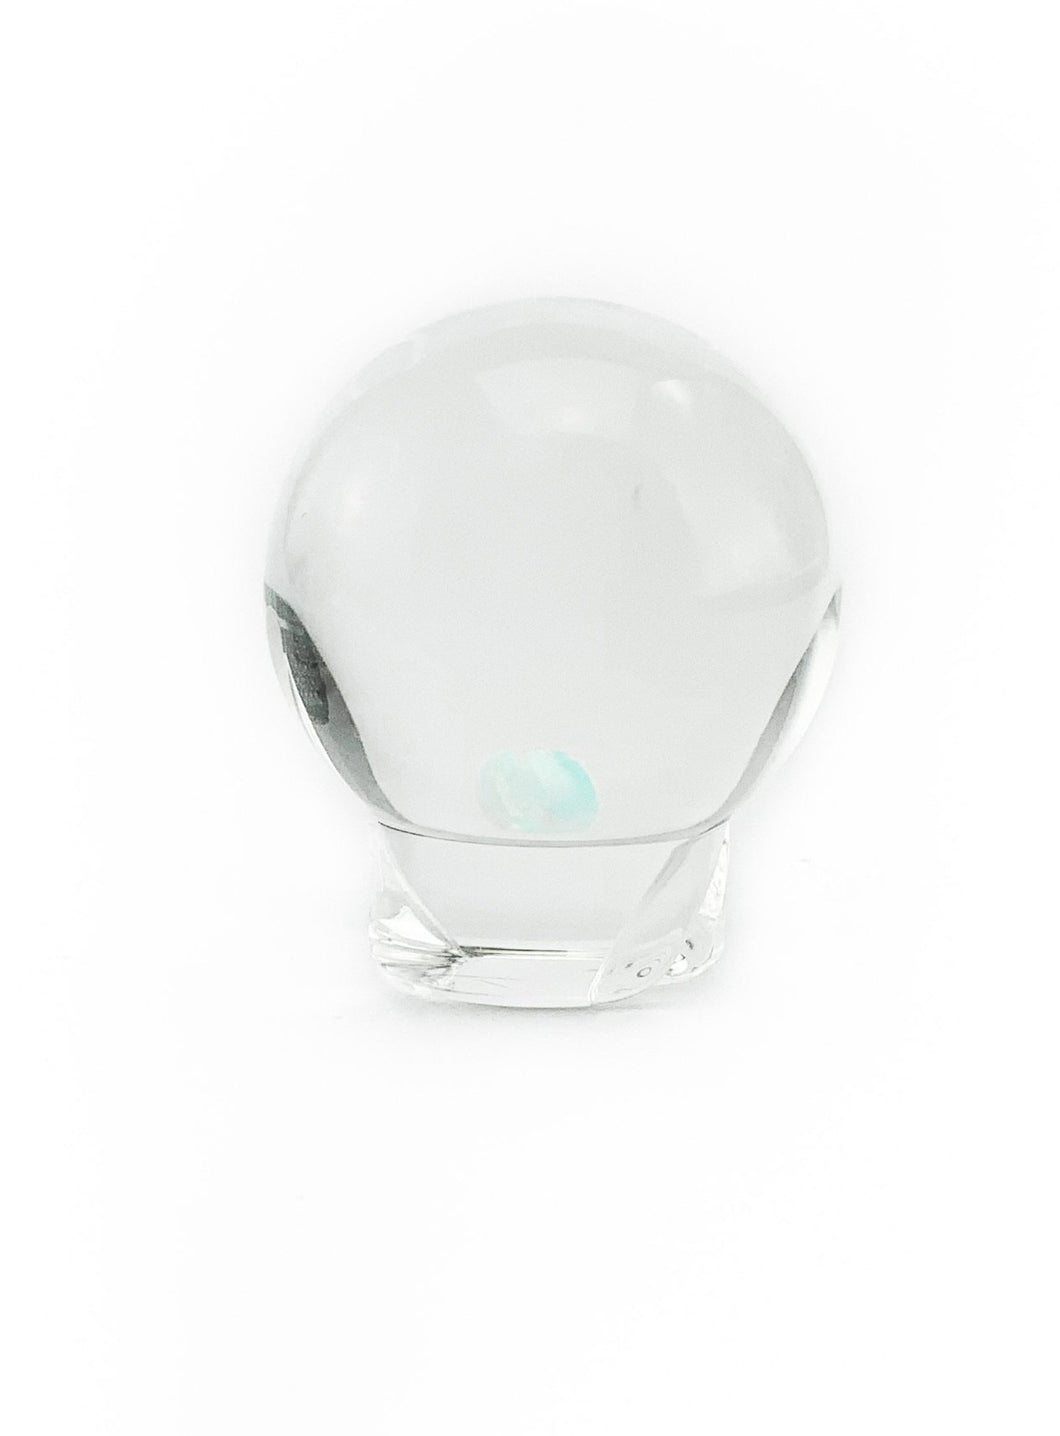 OTP Glass - Spinner Cap Clear Opal